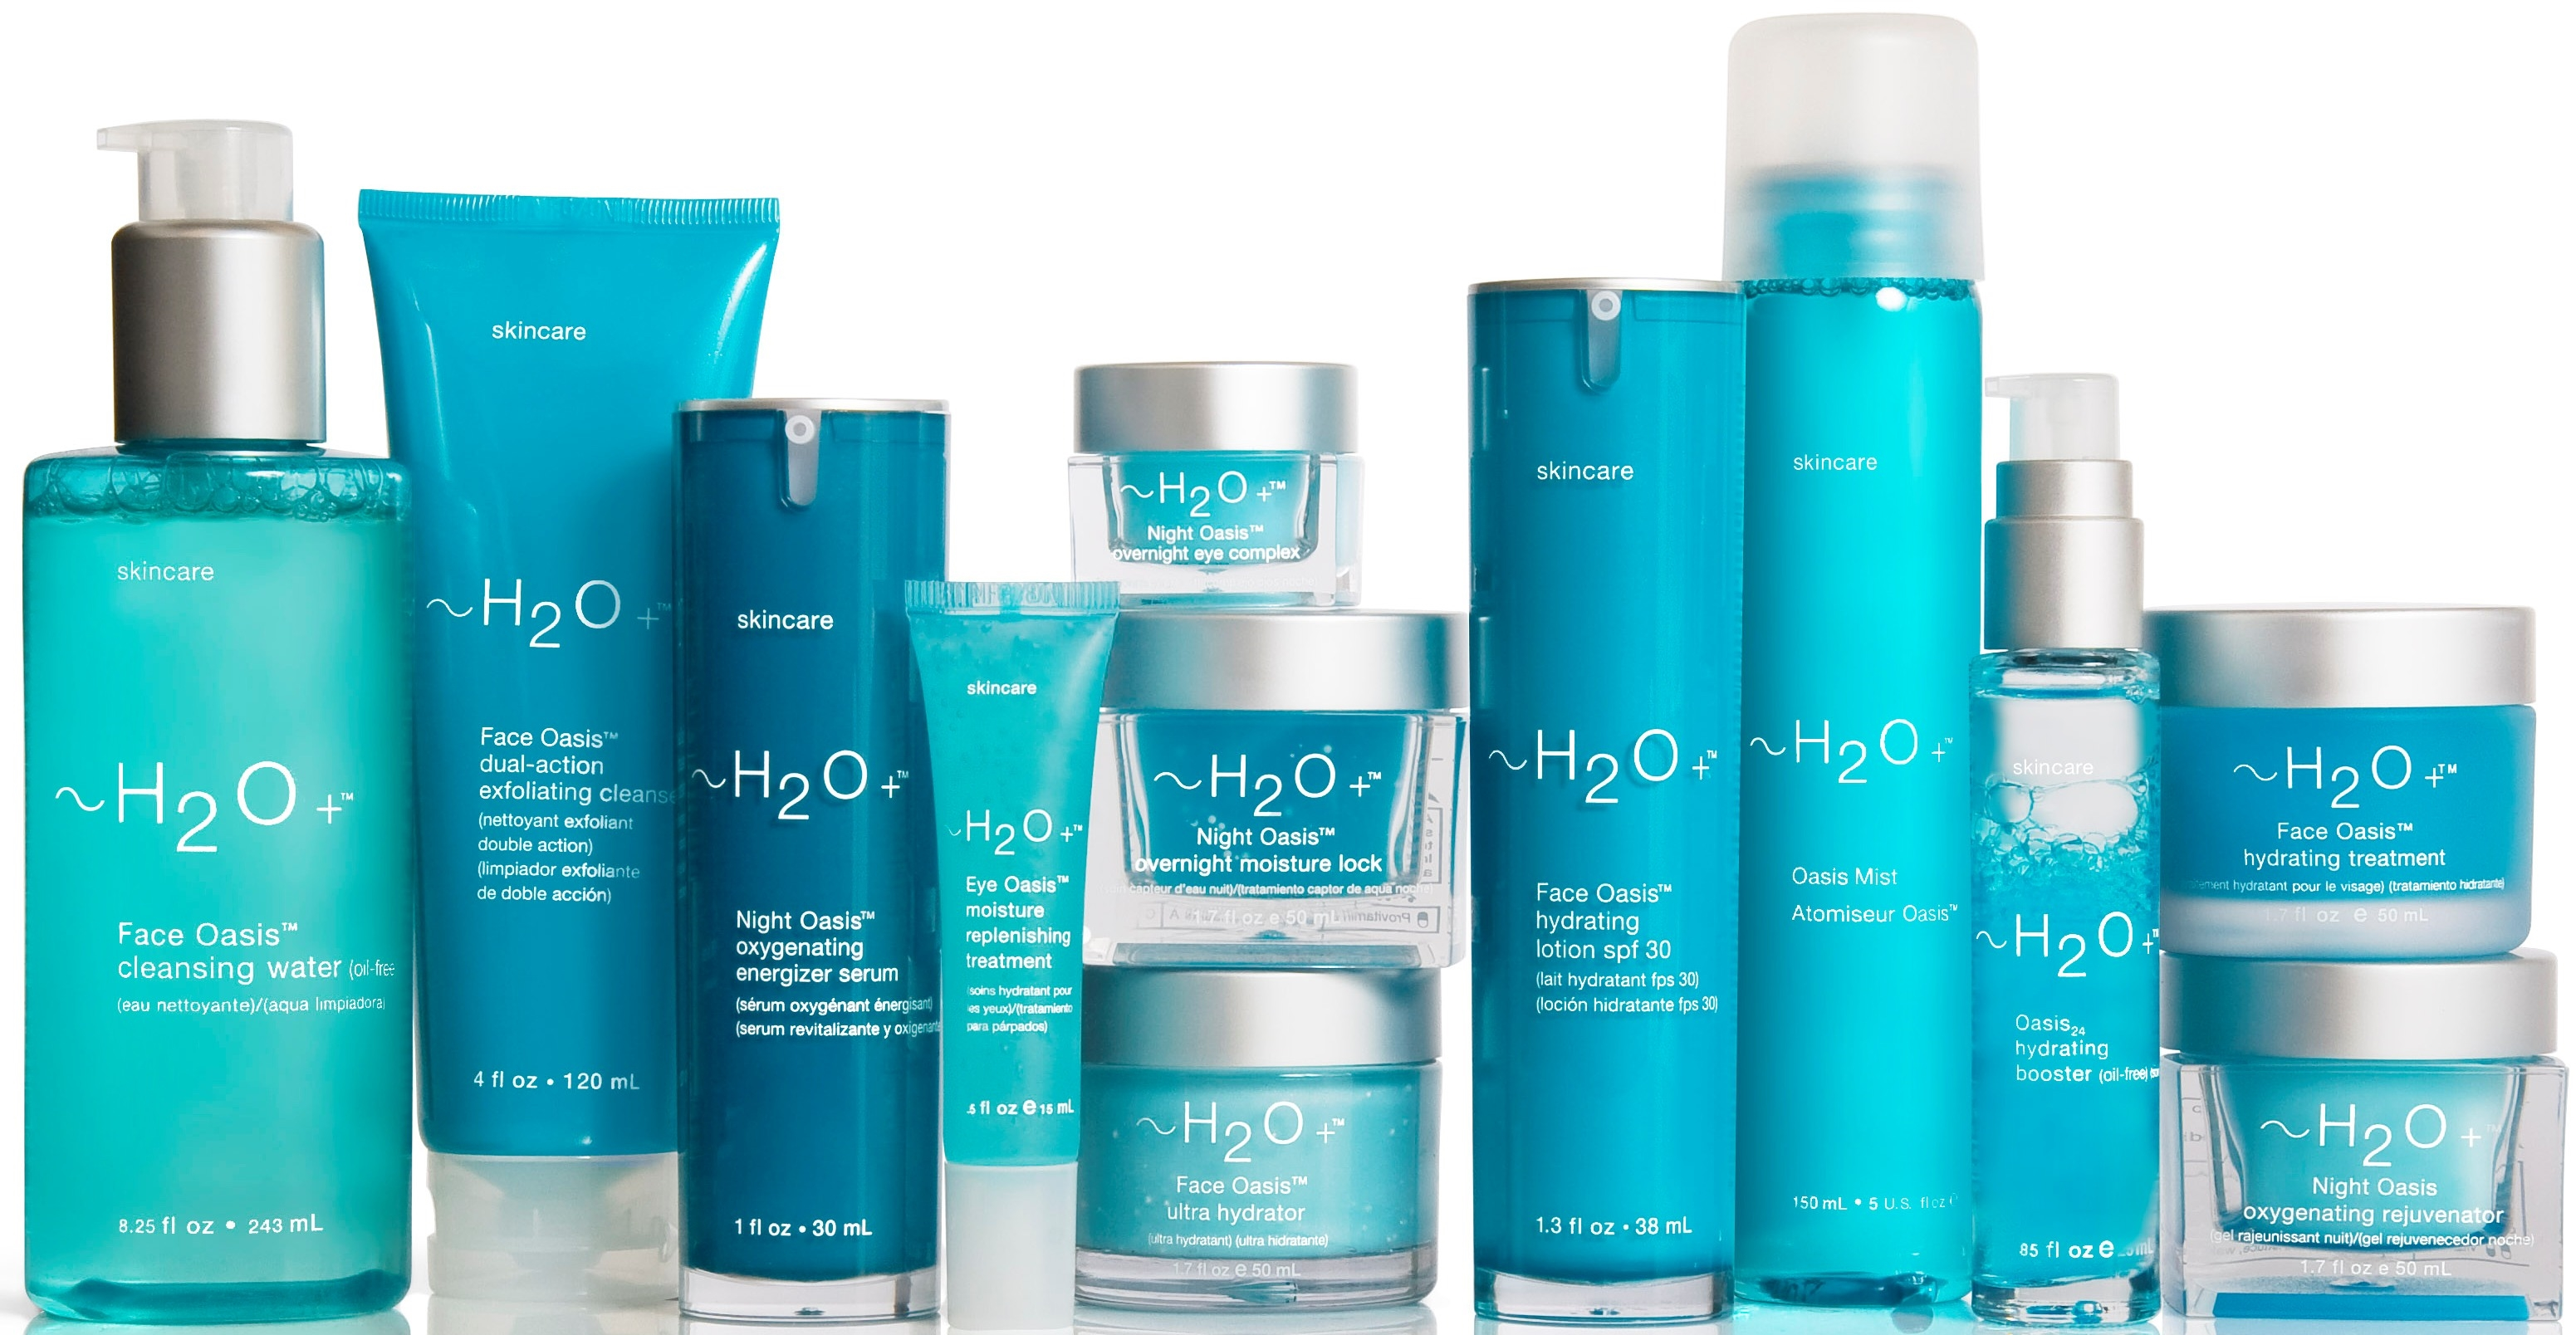 Get exclusive H2O Plus coupon codes & discounts when you join the unecdown-5l5.ga email list Ends Dec. 31, H2O Plus is the designer line of bath and body products, skincare formulas and .